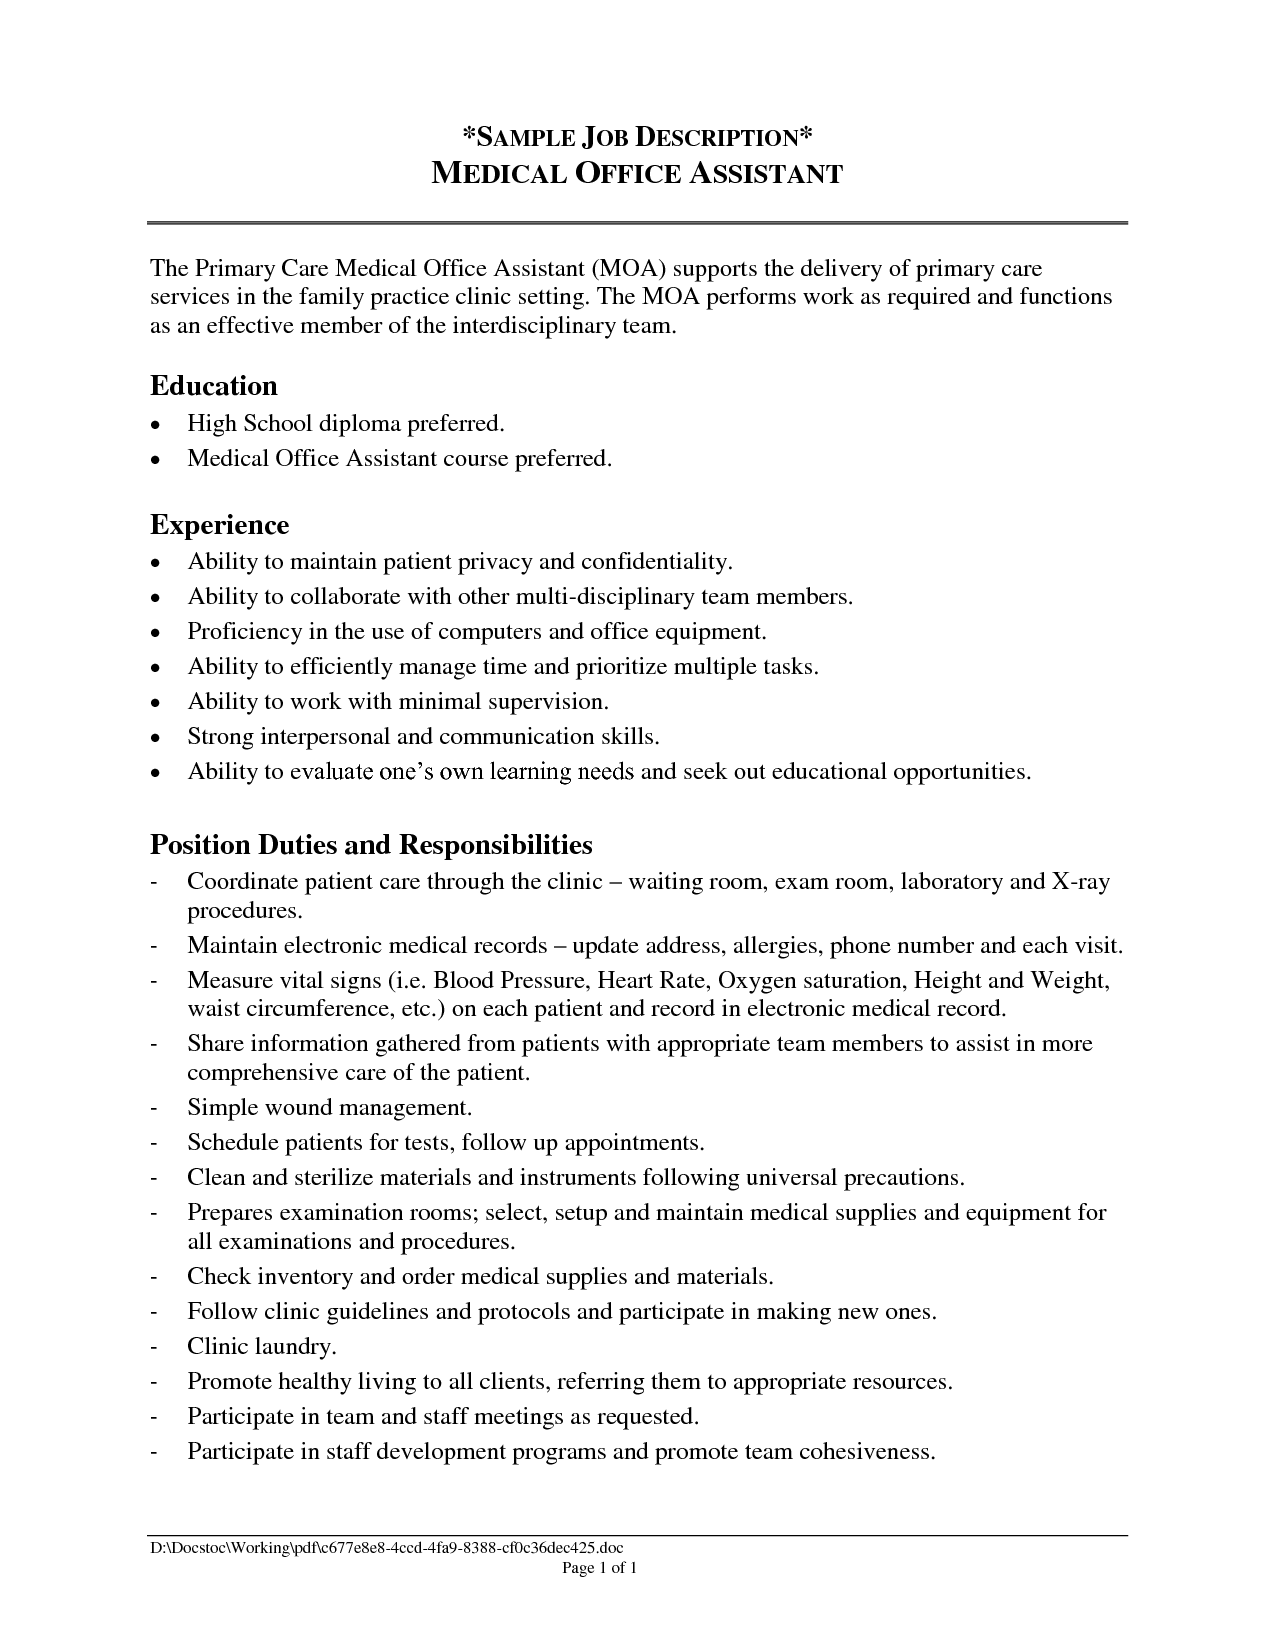 10 sample resume for medical assistant job description